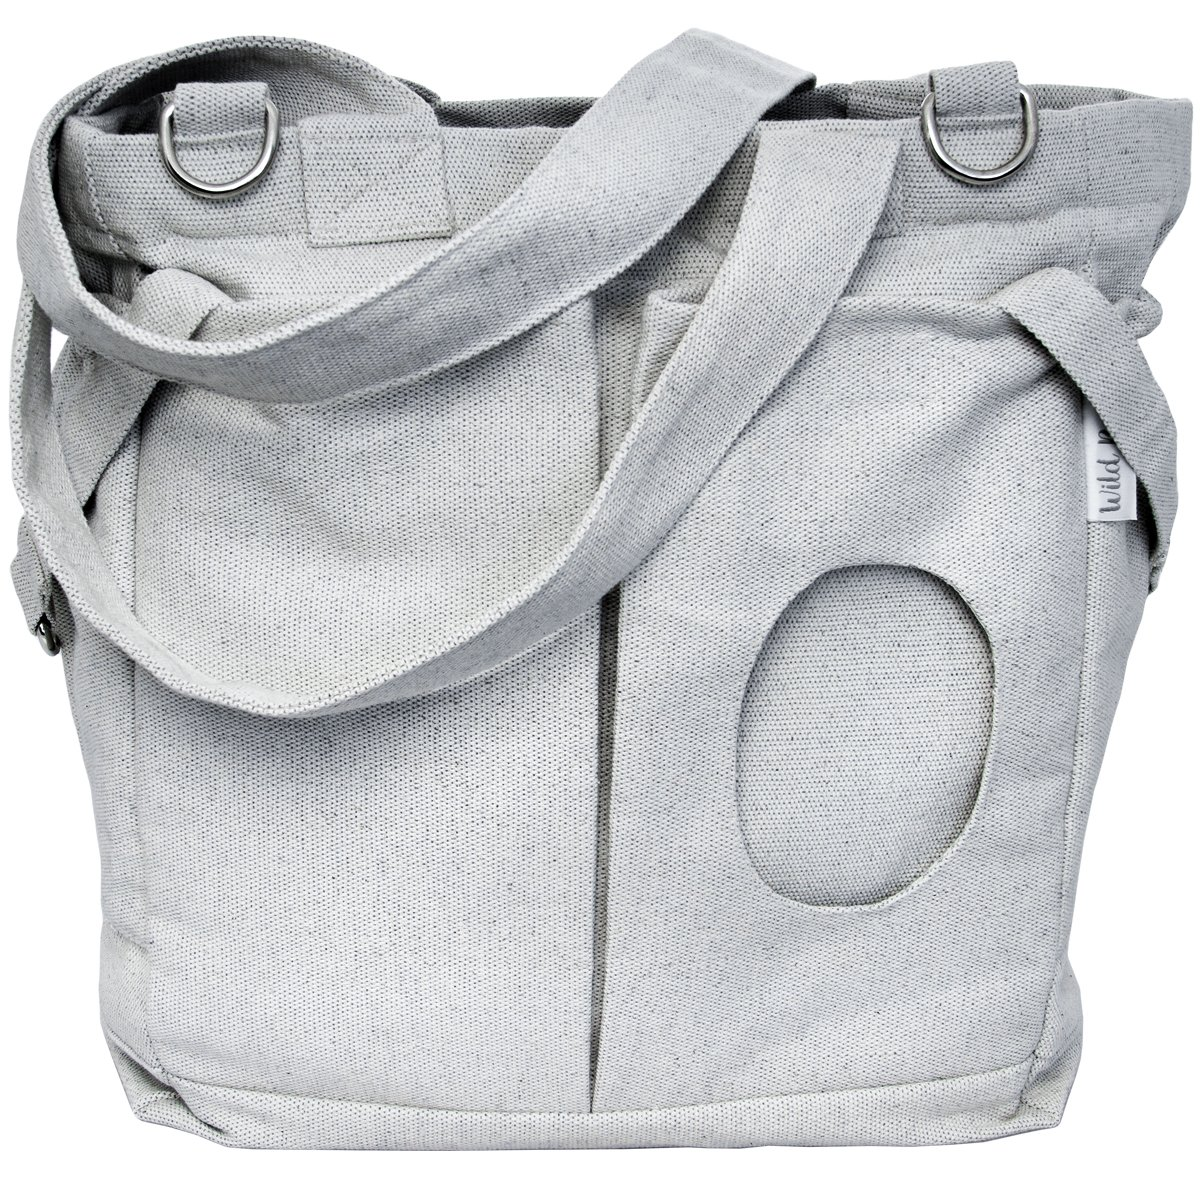 Wild Baby Neutral Unisex Washable Diaper Bag Tote with Stroller Straps